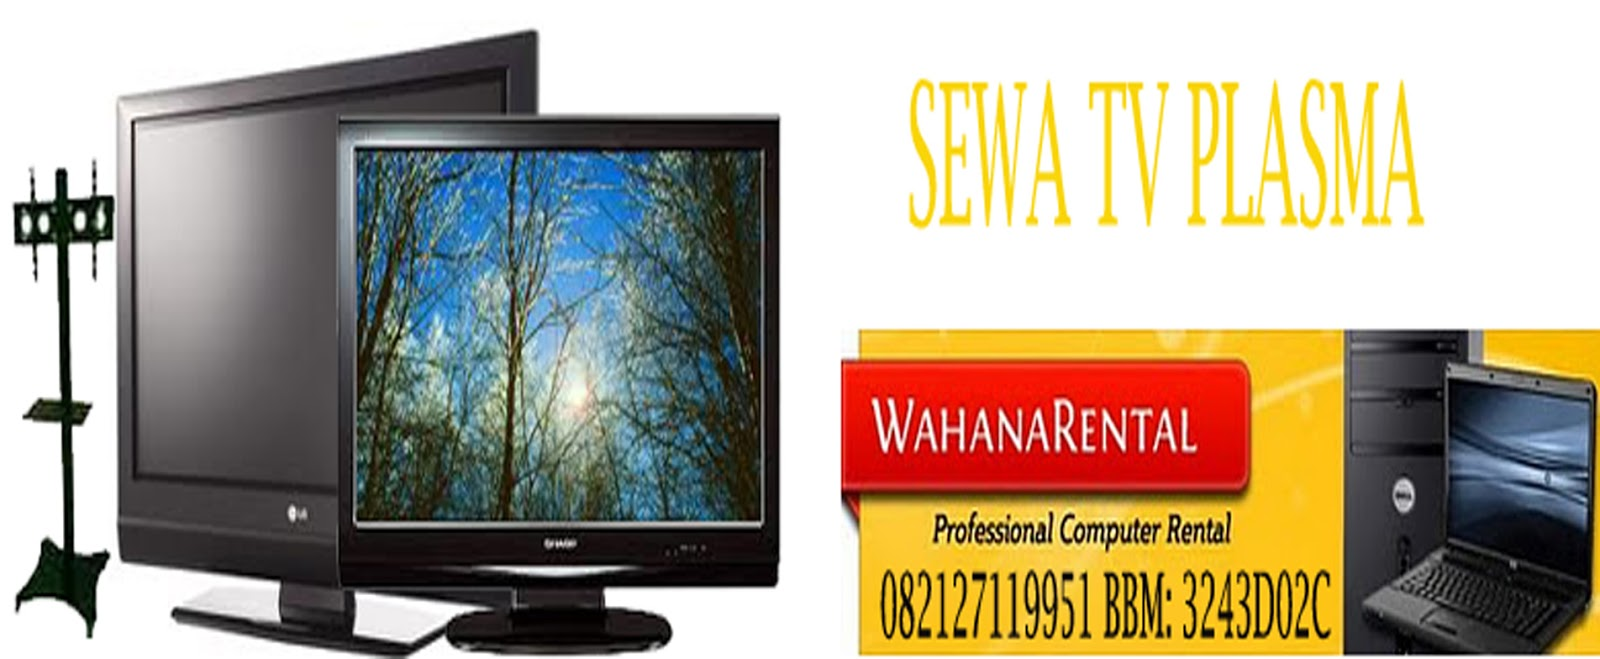 sewa tv plasma, rental tv plasma, sewa lcd tv, rental lcd tv